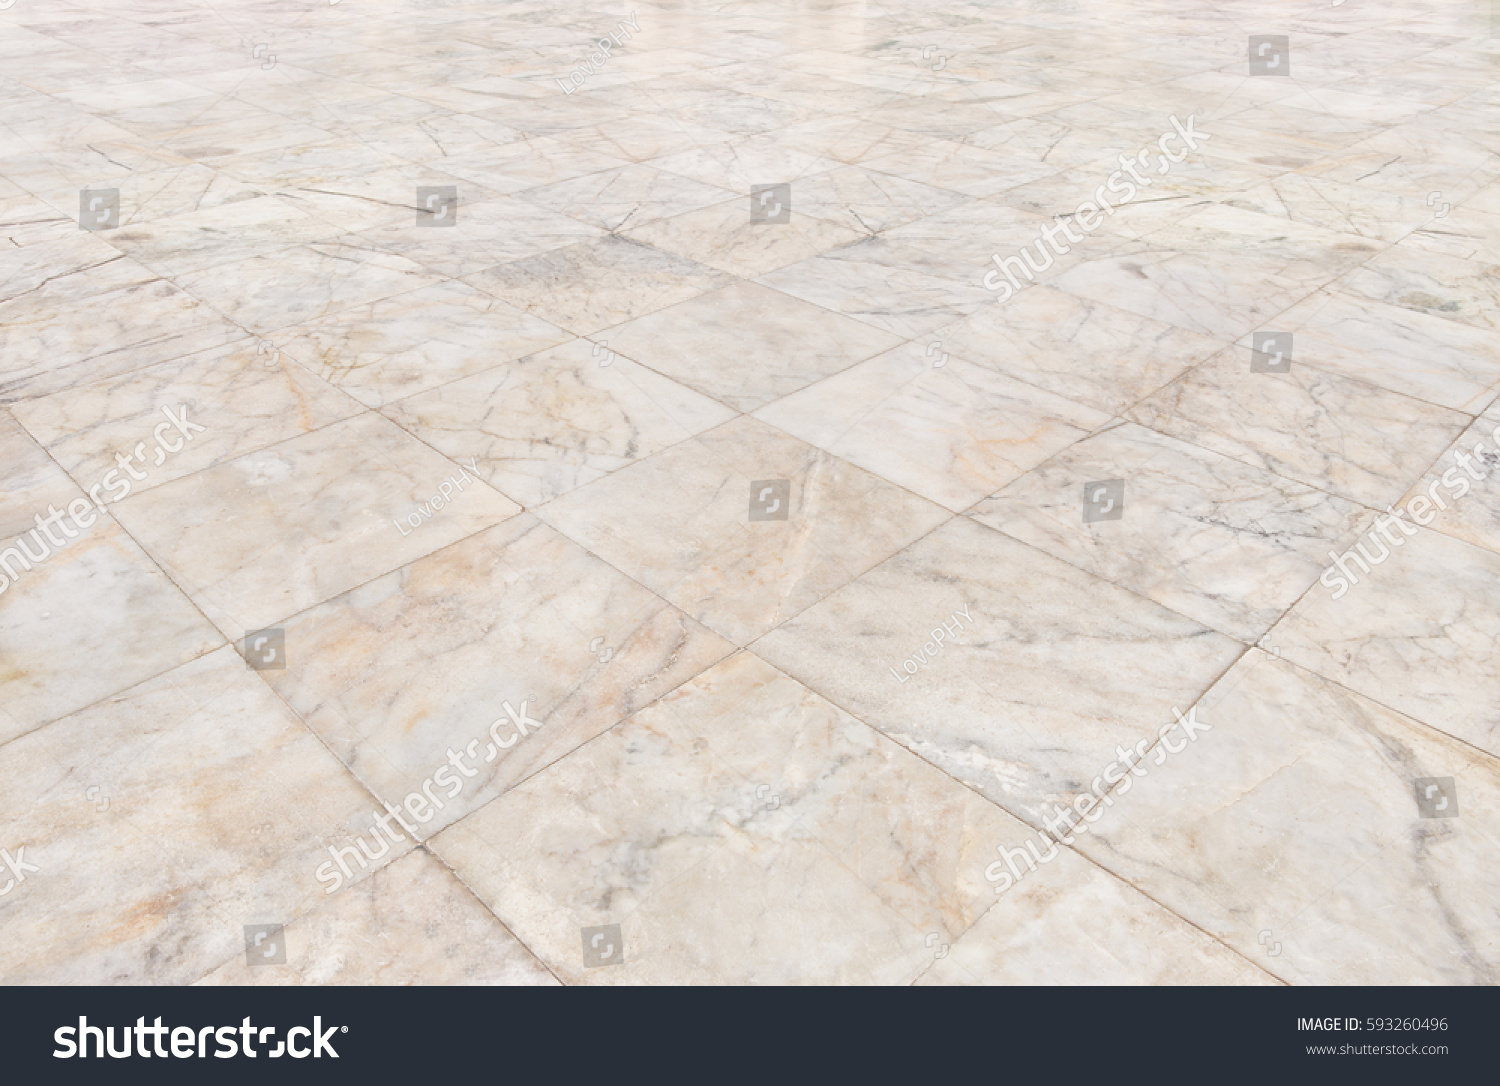 Real marble floor tile pattern background stock photo 593260496 real marble floor tile pattern for background dailygadgetfo Choice Image